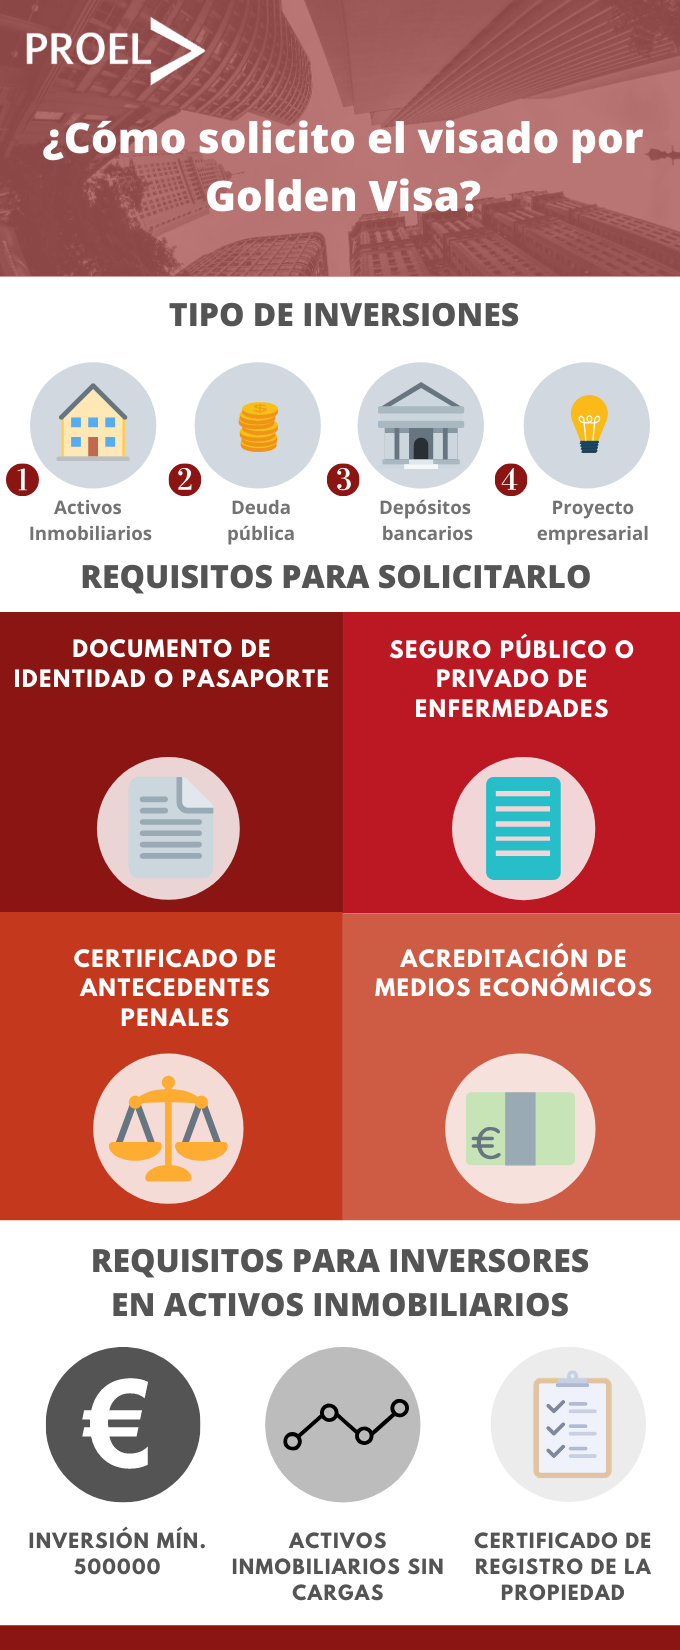 Requisitos-para-solicitar-Golden-Visa-2